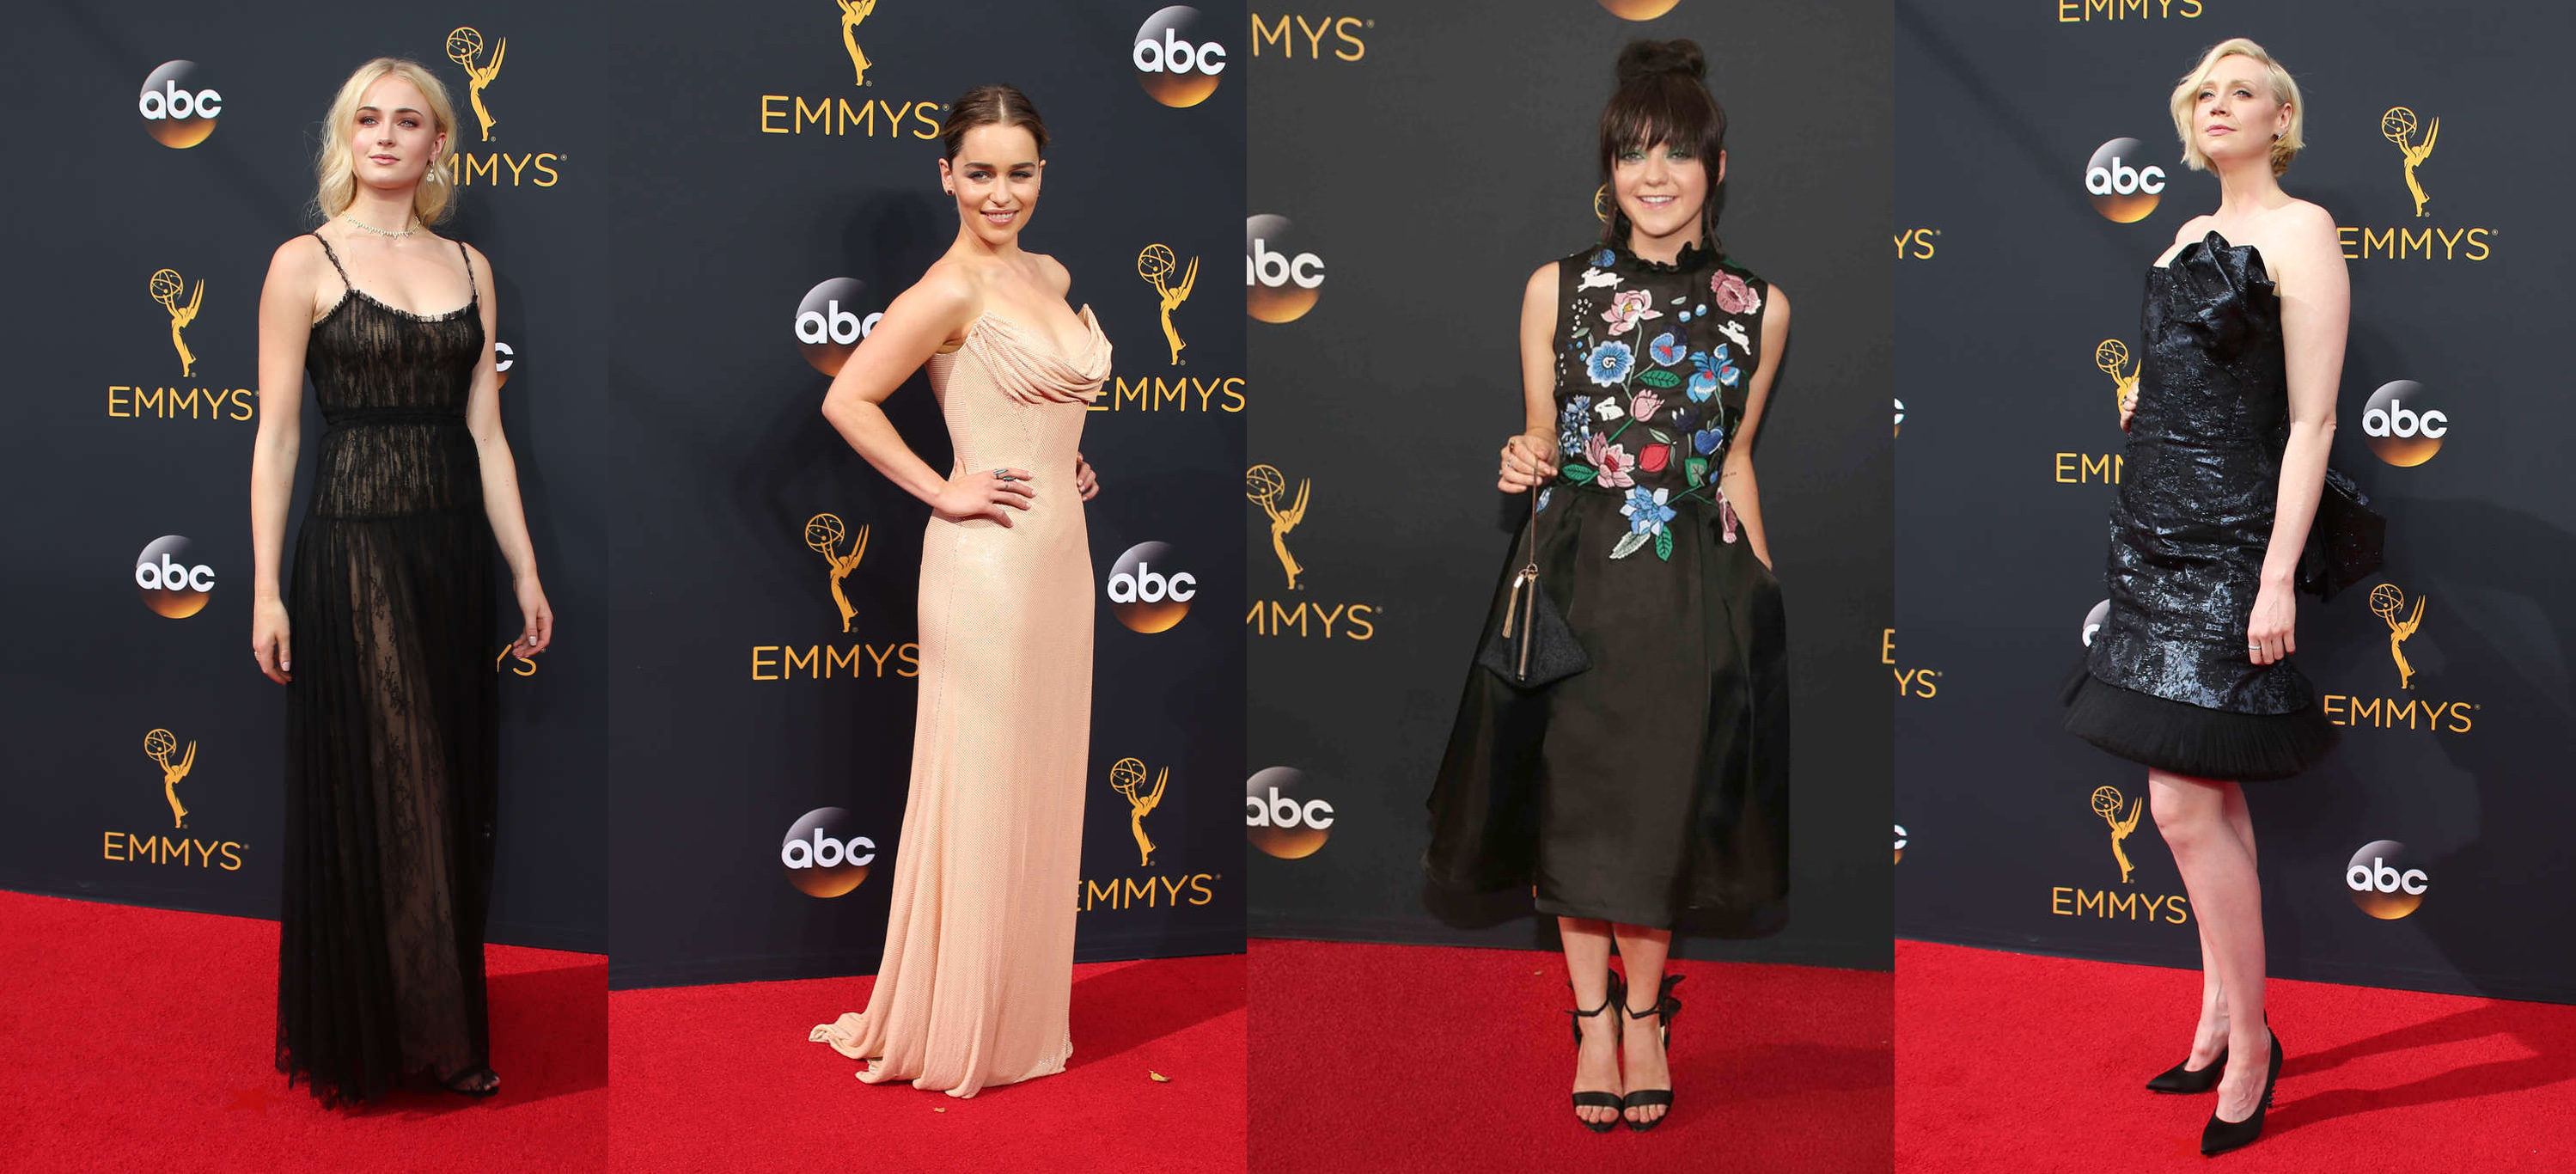 Emmy 2016 Game of Thrones